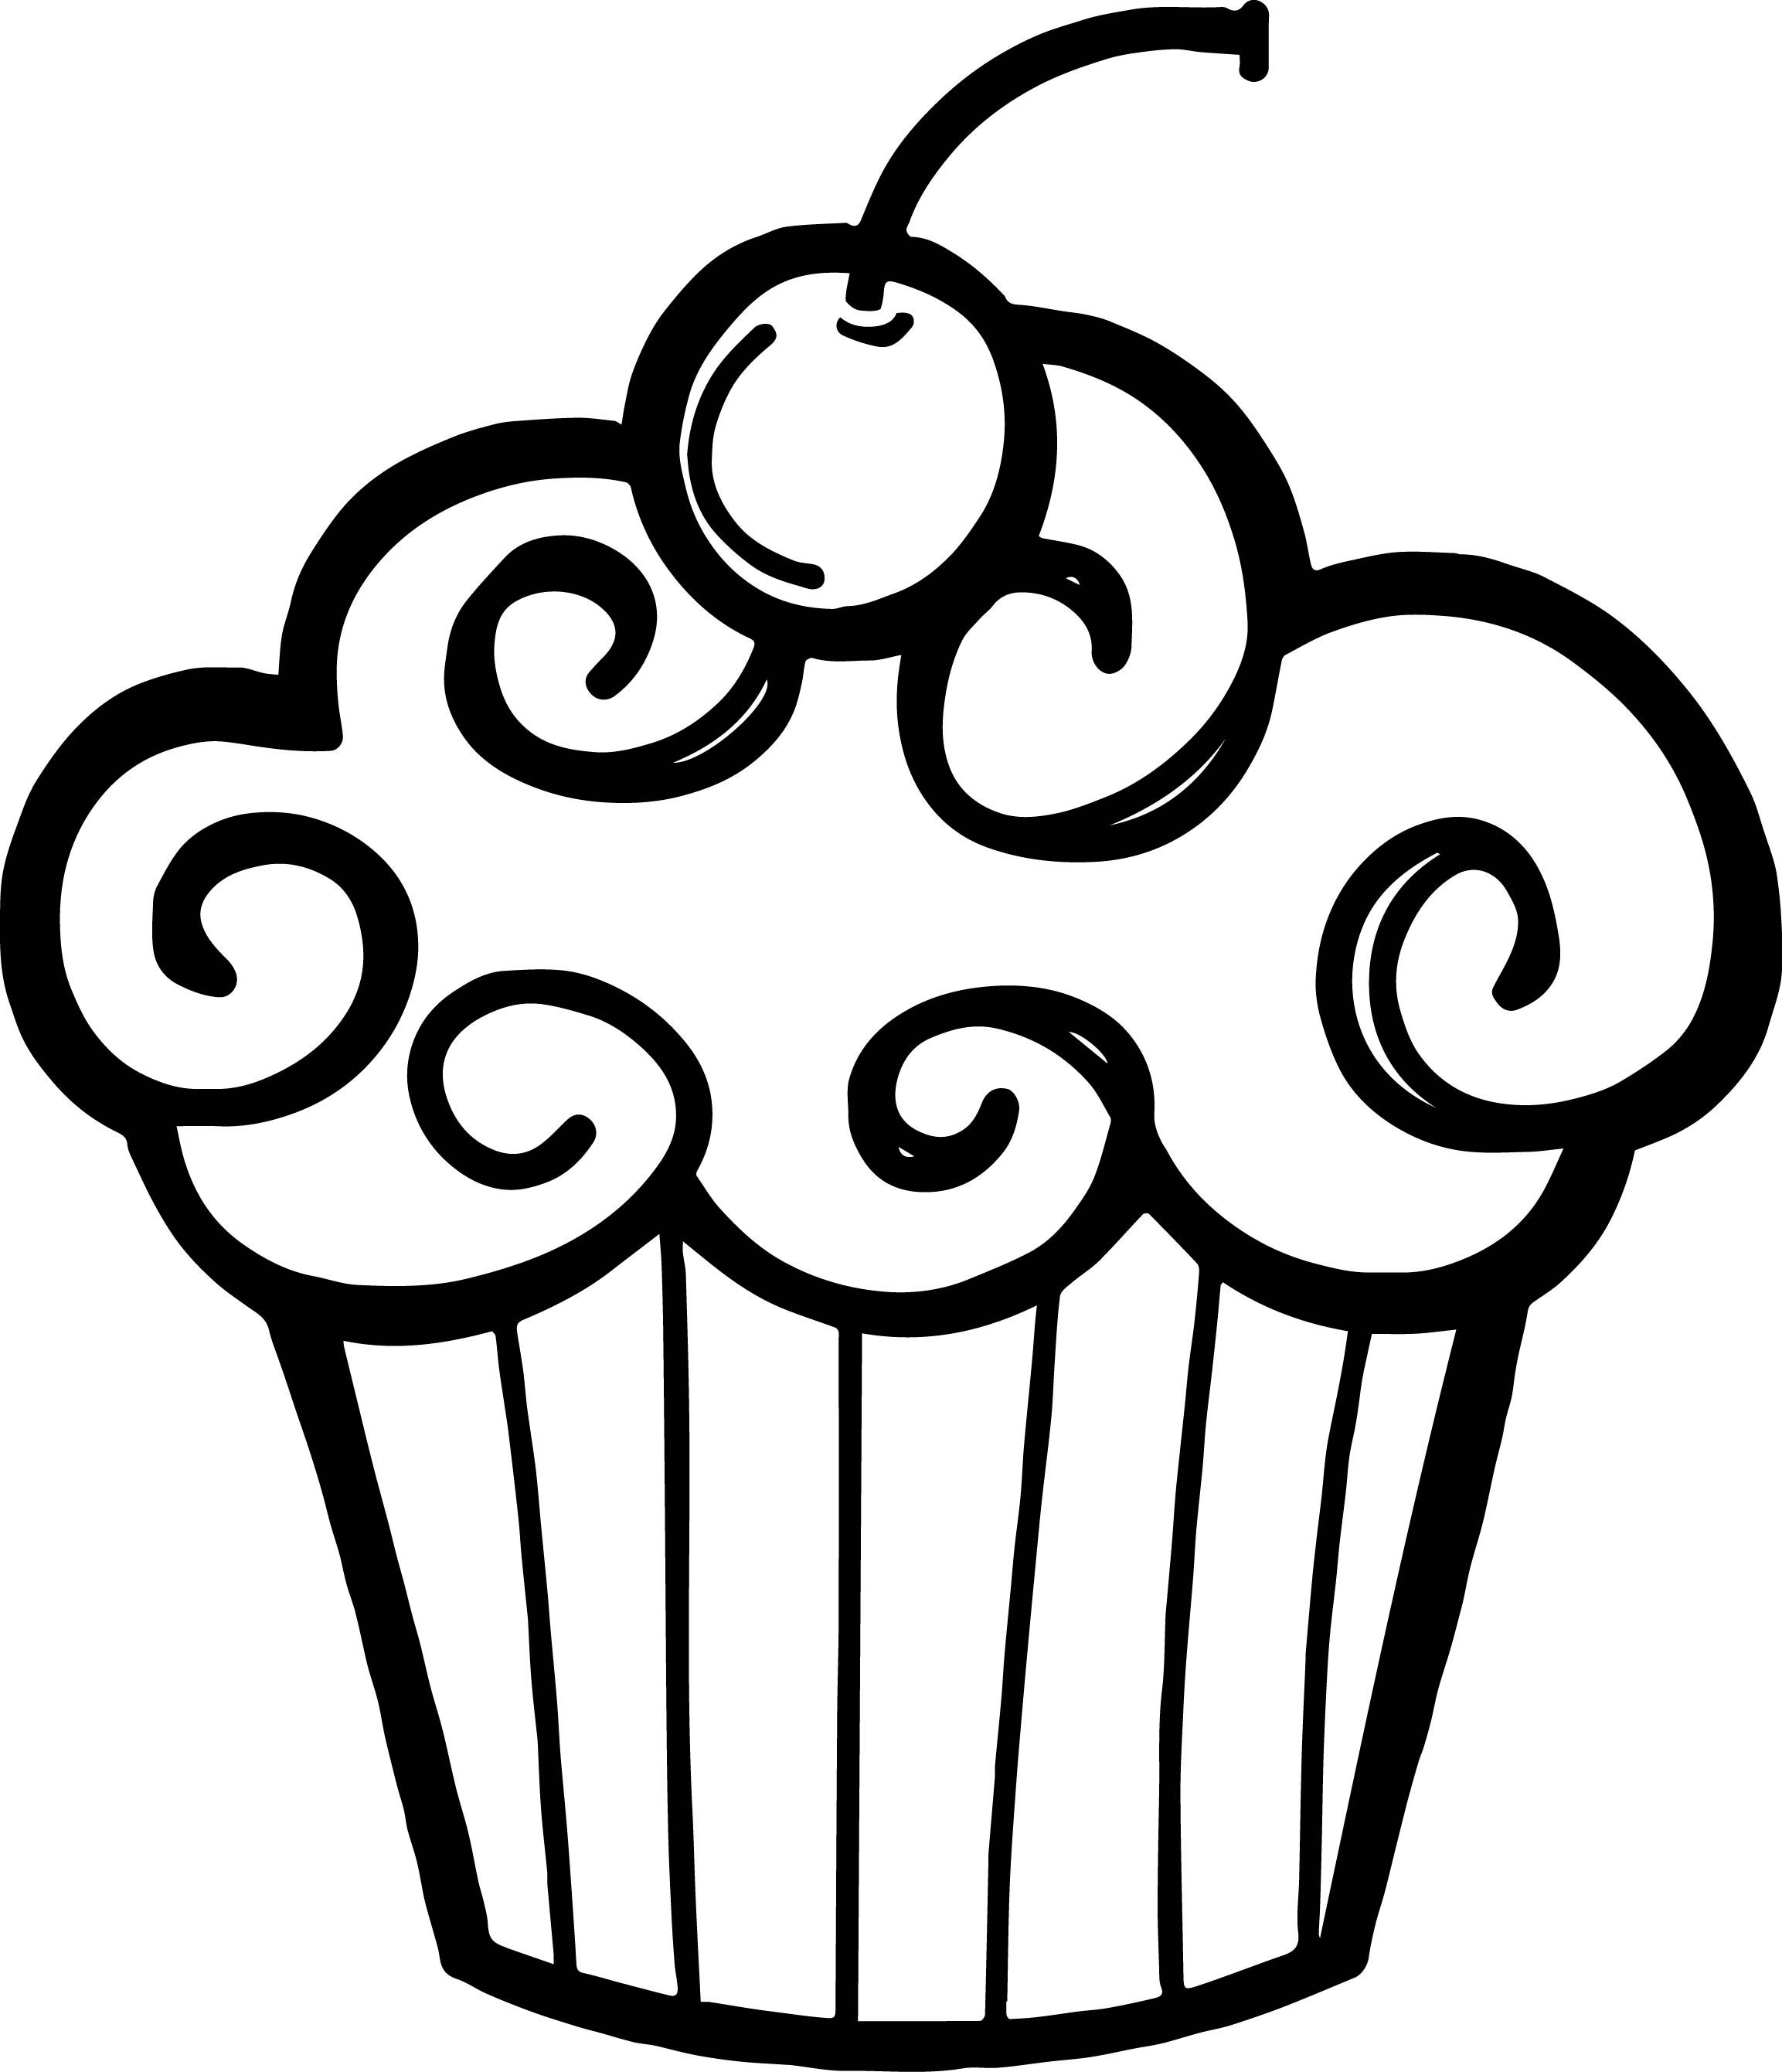 free black and white cupcake clipart(2306×2681